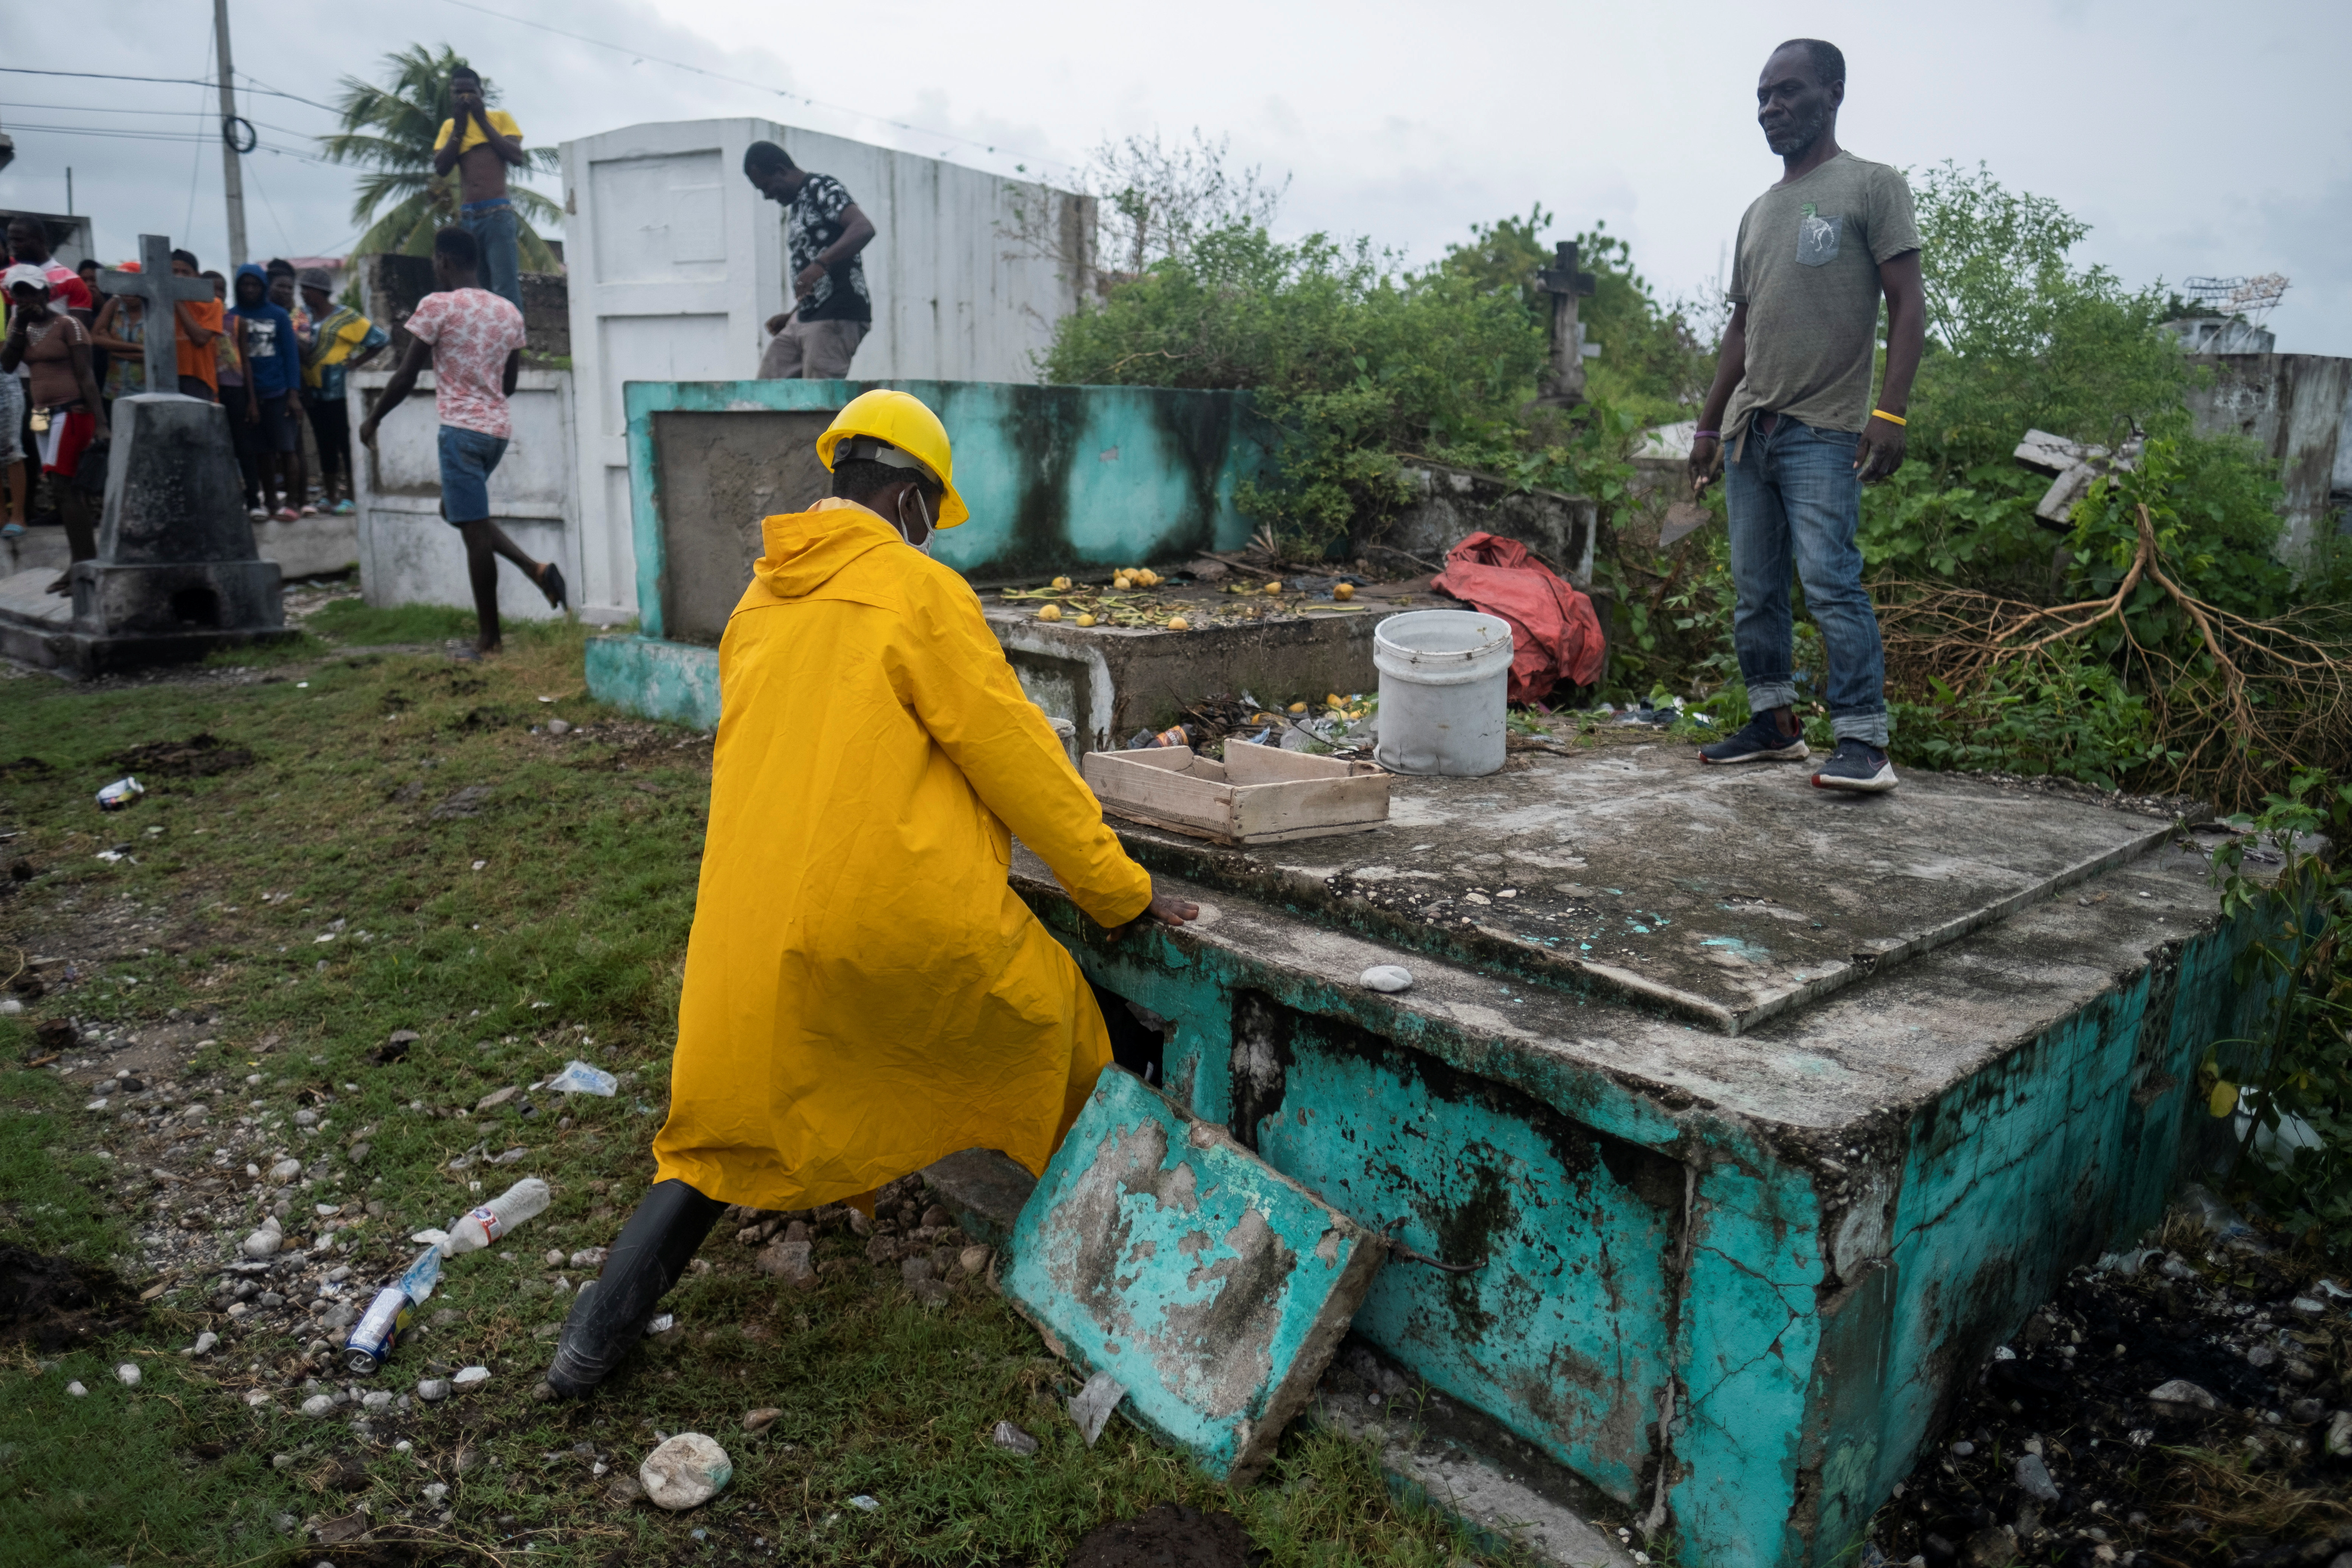 A man places the body of a victim of Saturday's 7.2 magnitude quake in a grave, in Les Cayes, Haiti August 17, 2021. REUTERS/Ricardo Arduengo